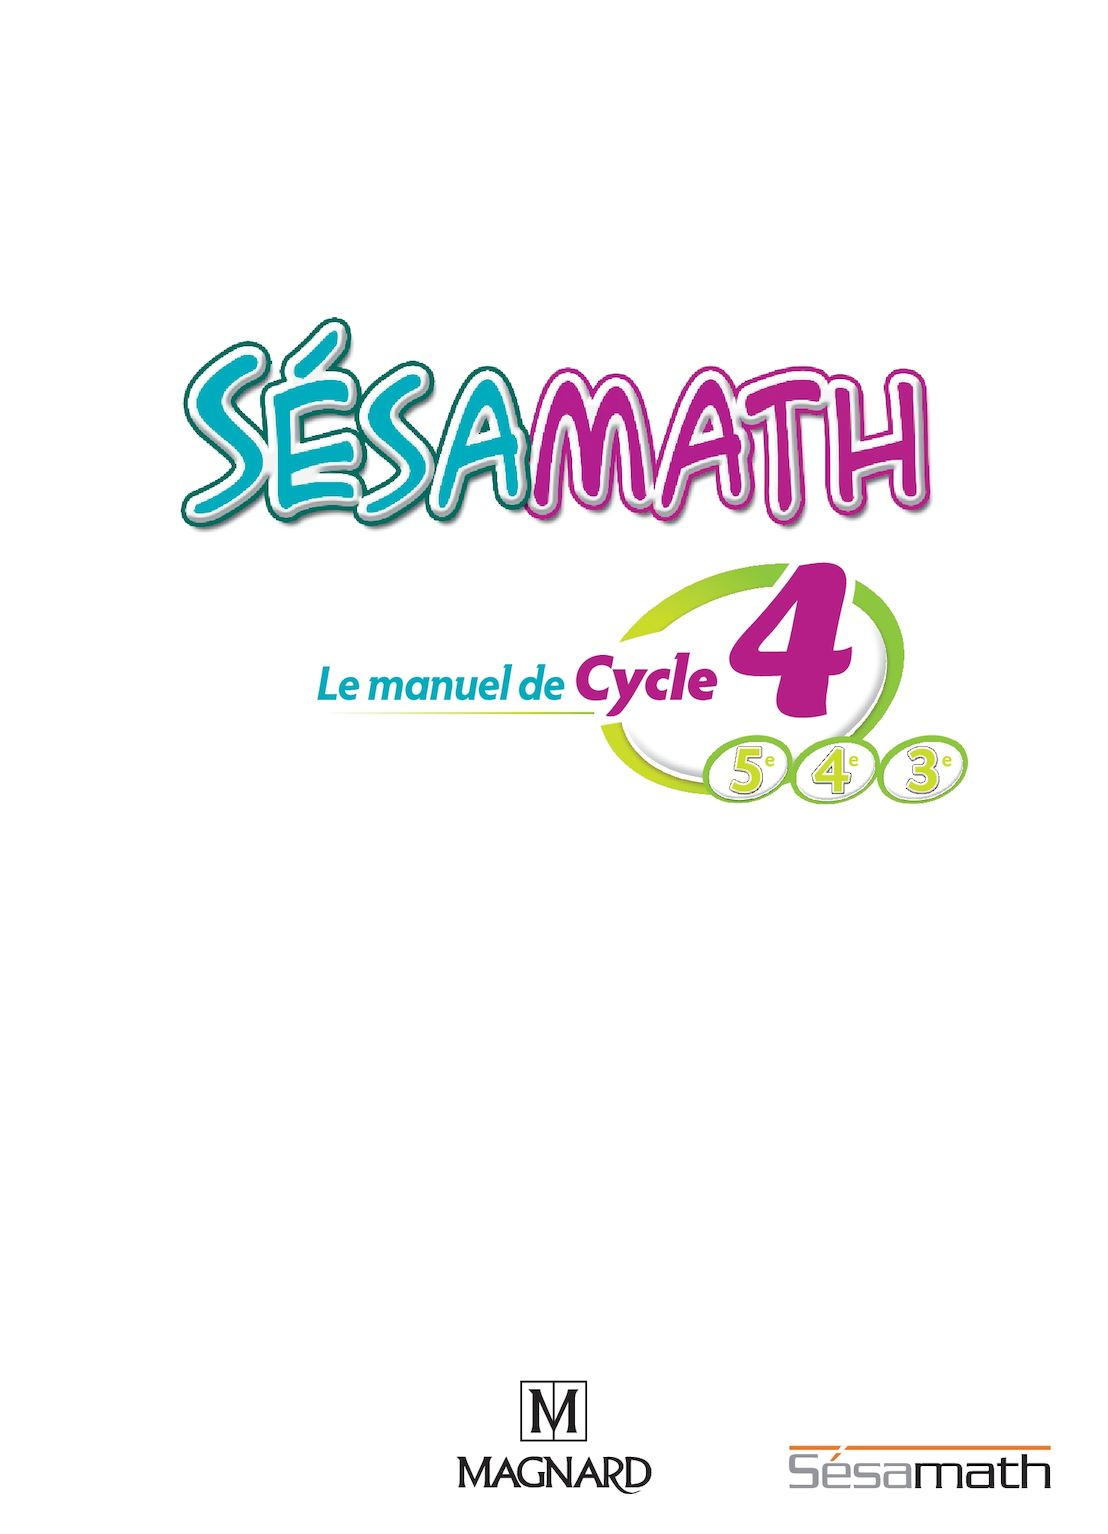 Correction Exercice De Math 4eme Sesamath : correction, exercice, sesamath, Calaméo, Sésamath, Manuel, Cycle